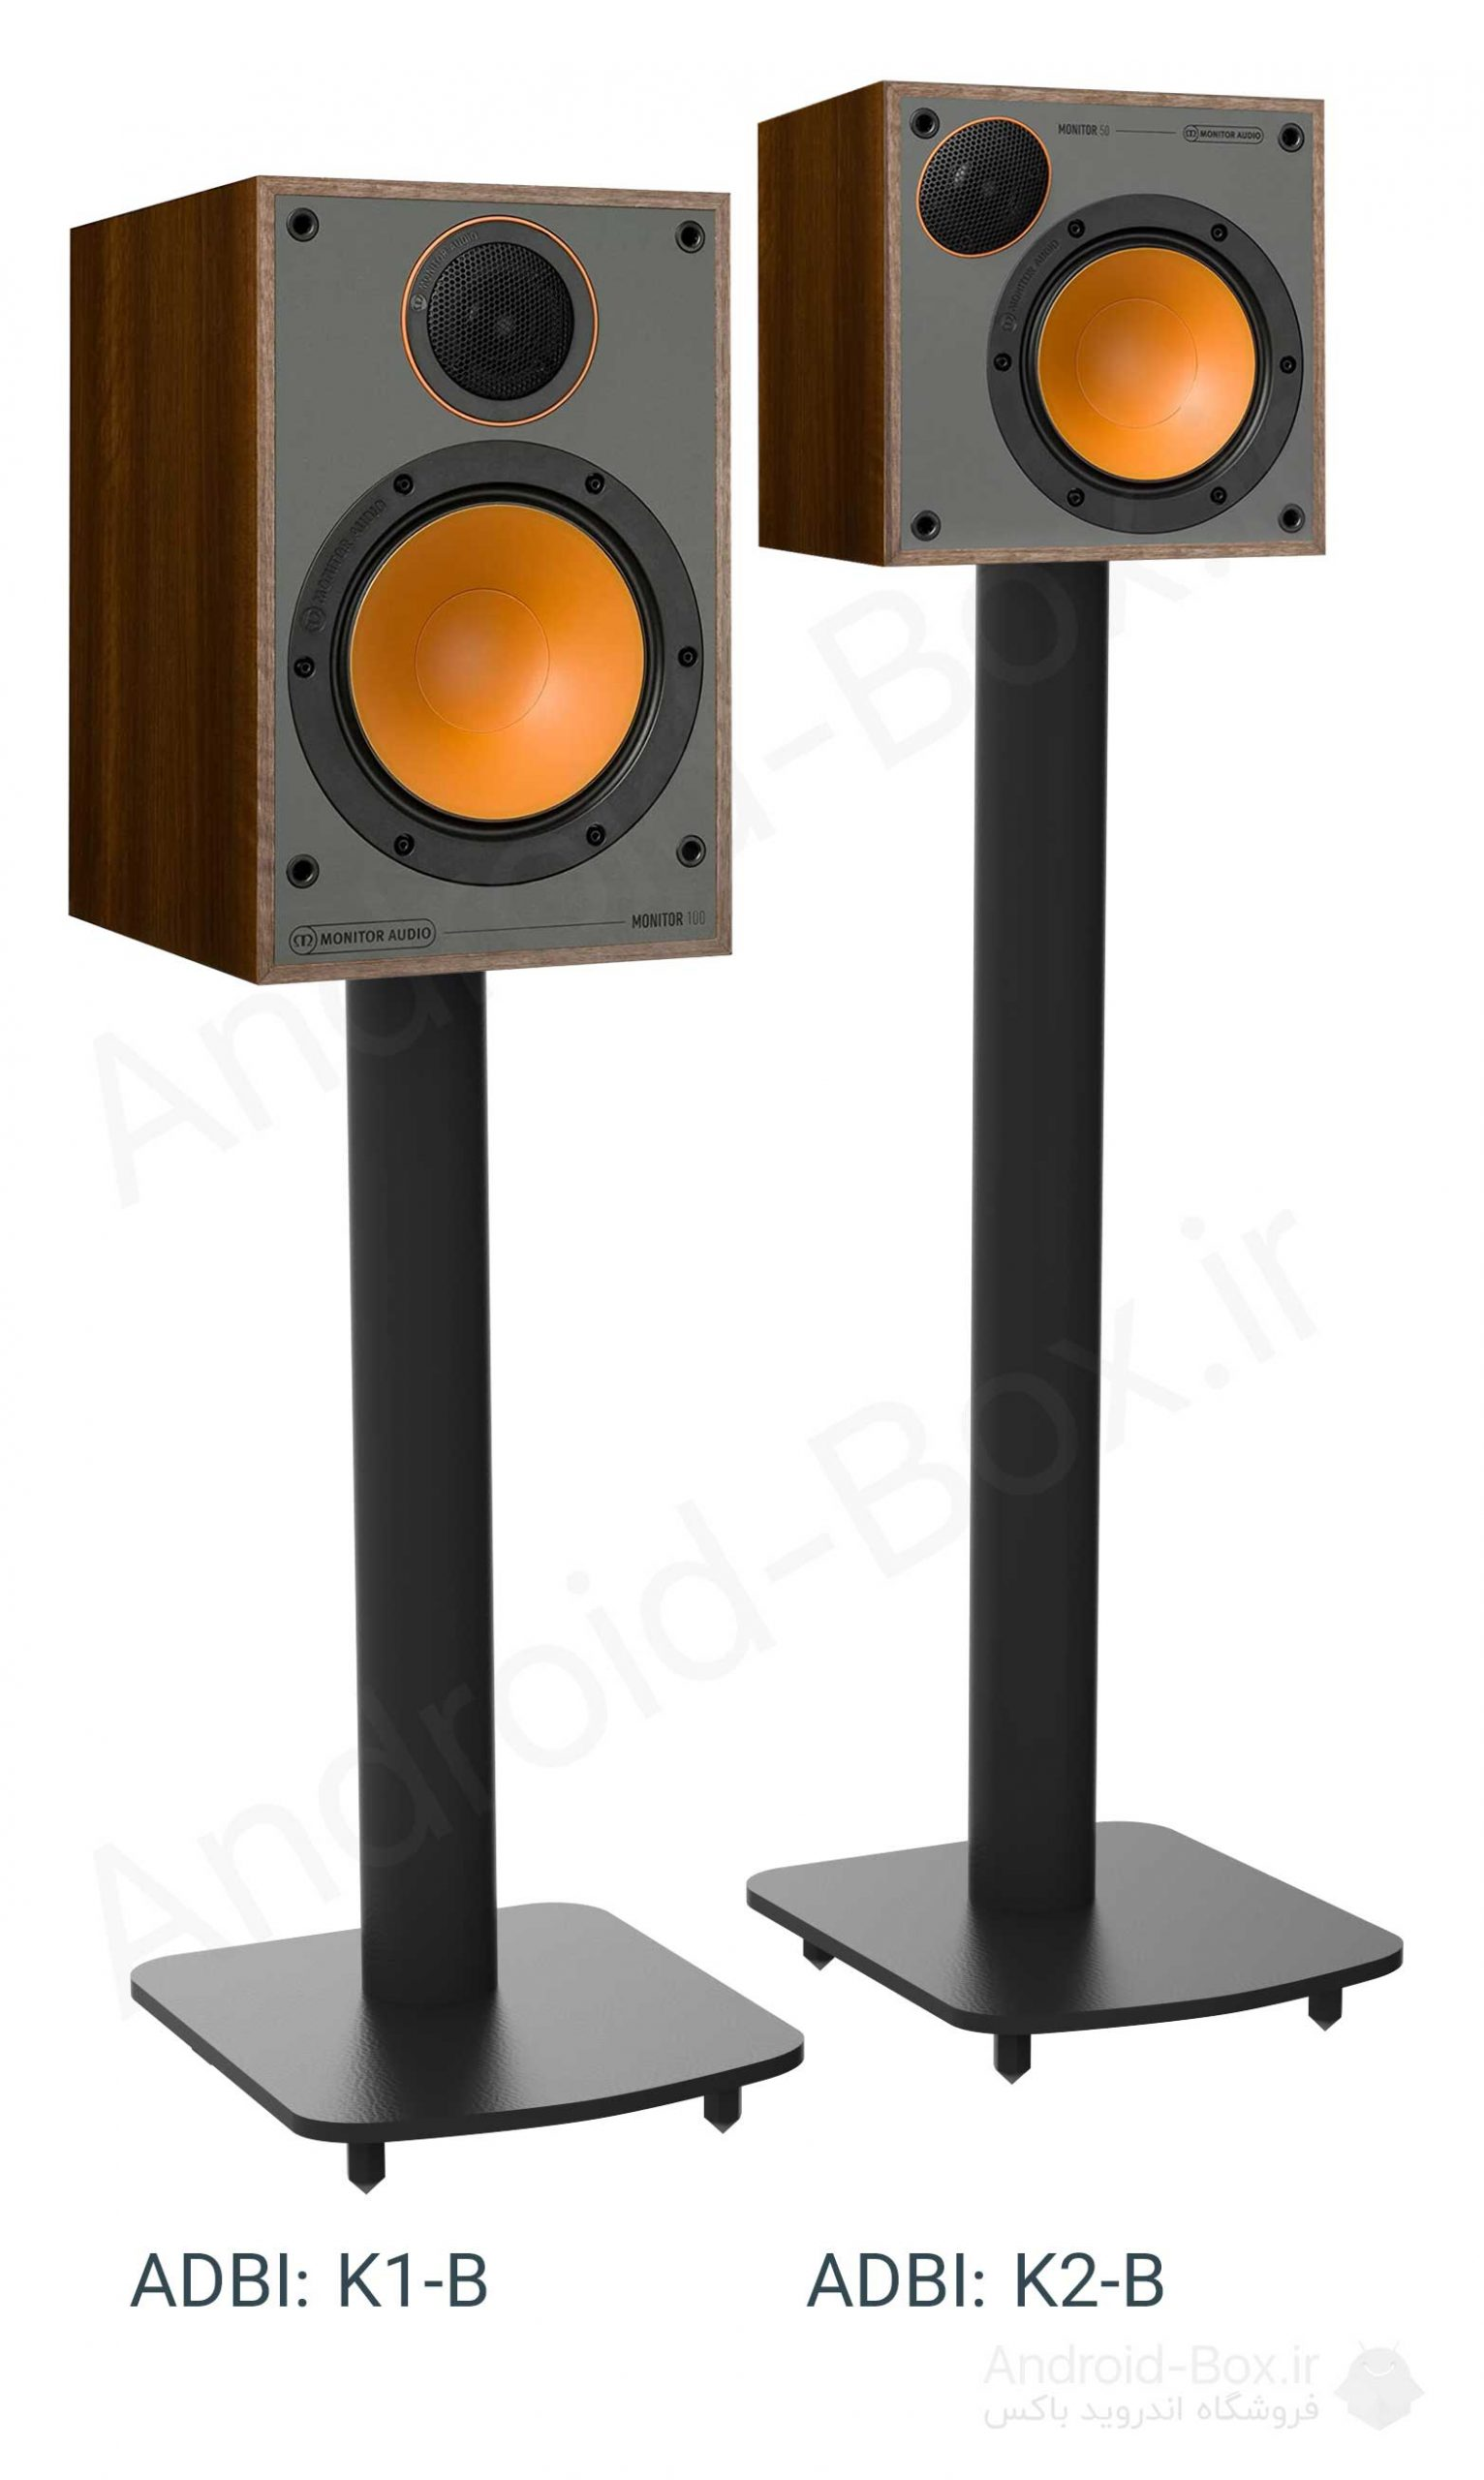 Android Box Dot Ir PRODUCTS Professional Speaker Stands K Series Black